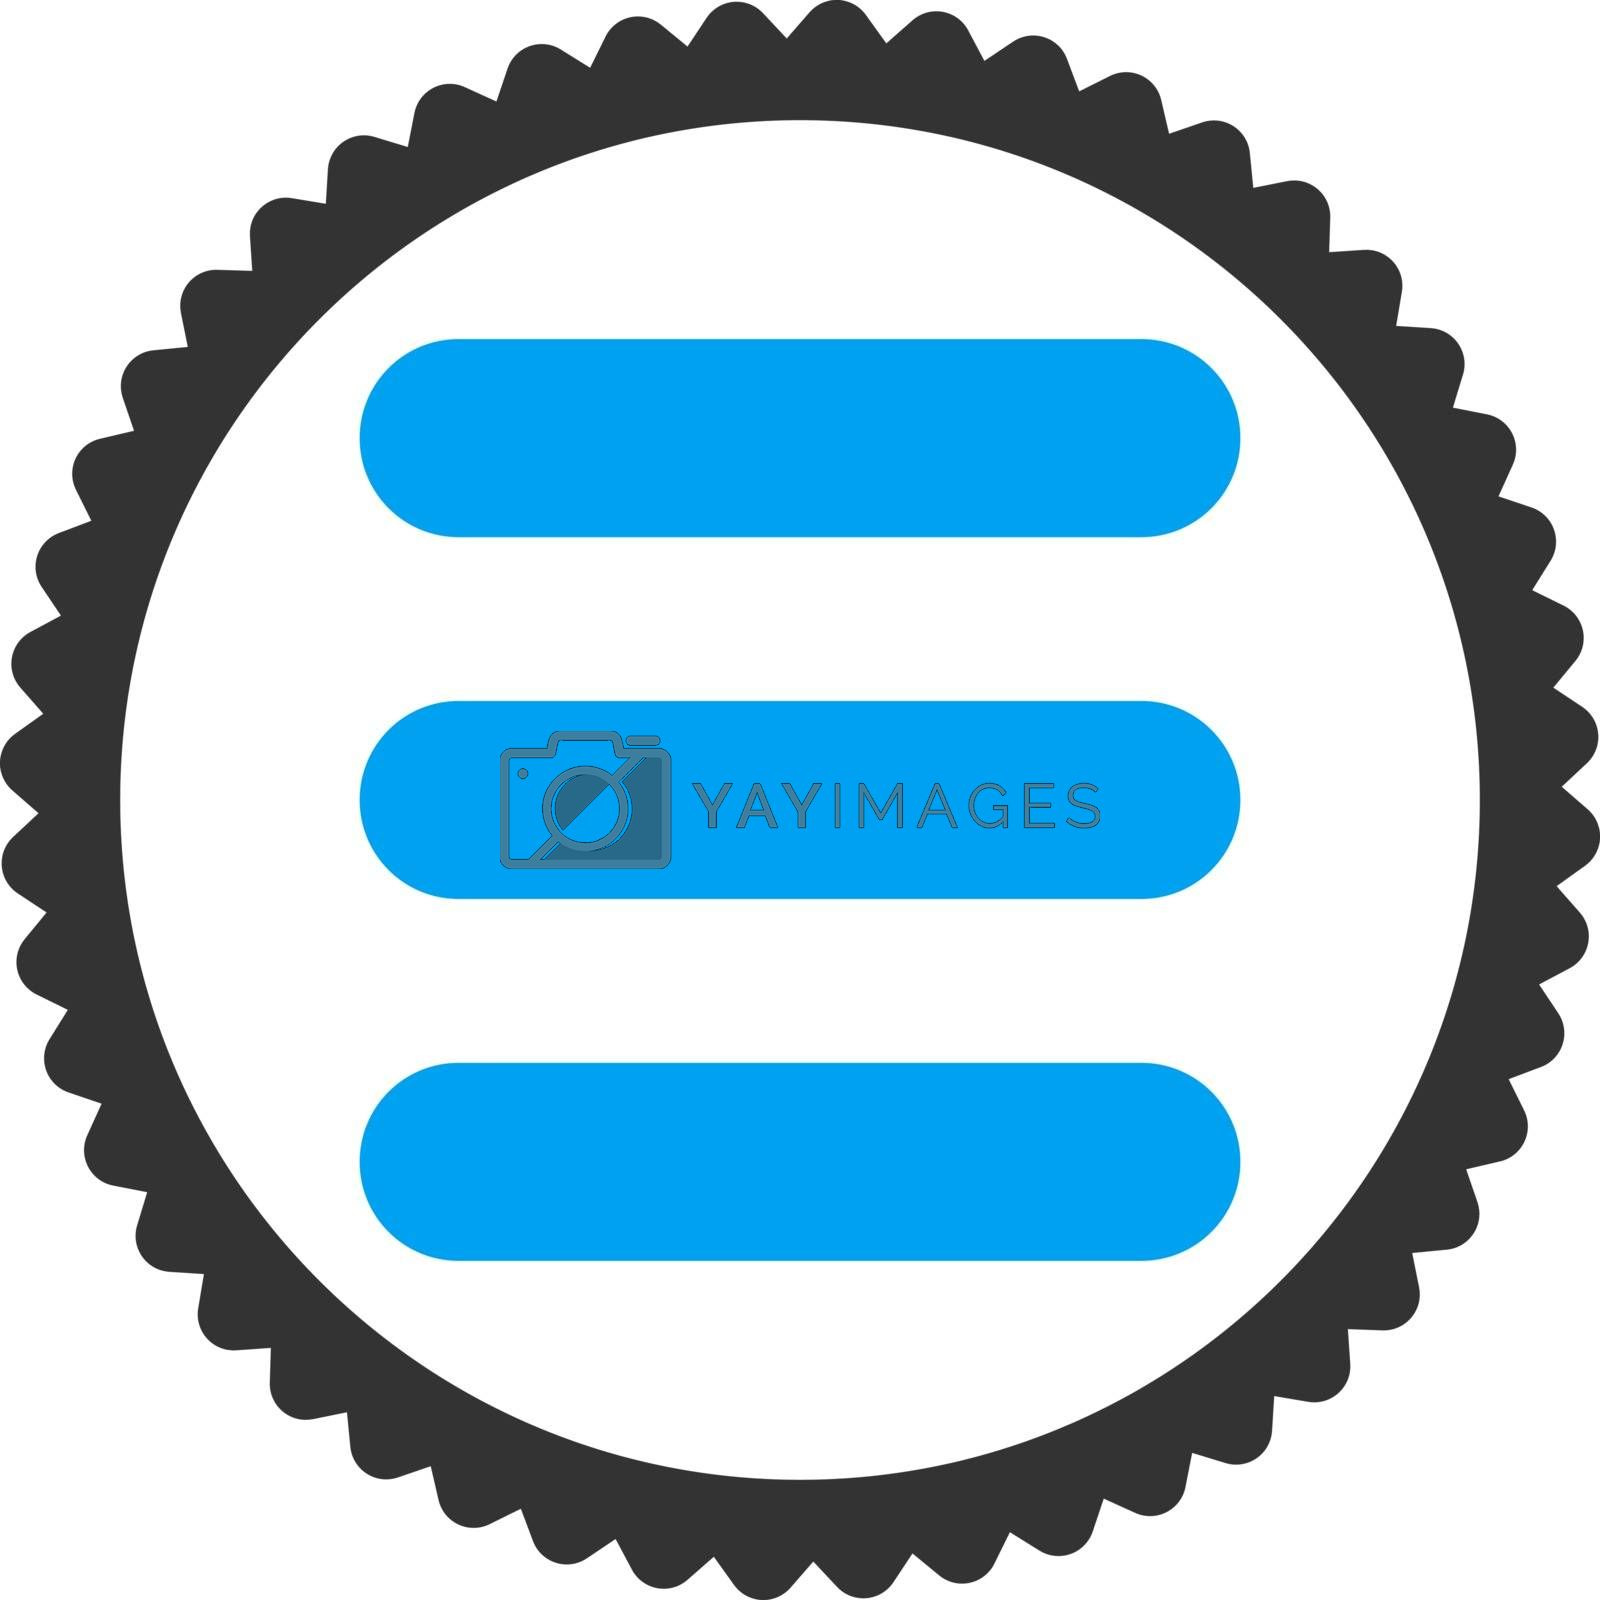 Stack flat blue and gray colors round stamp icon by Aha-Soft